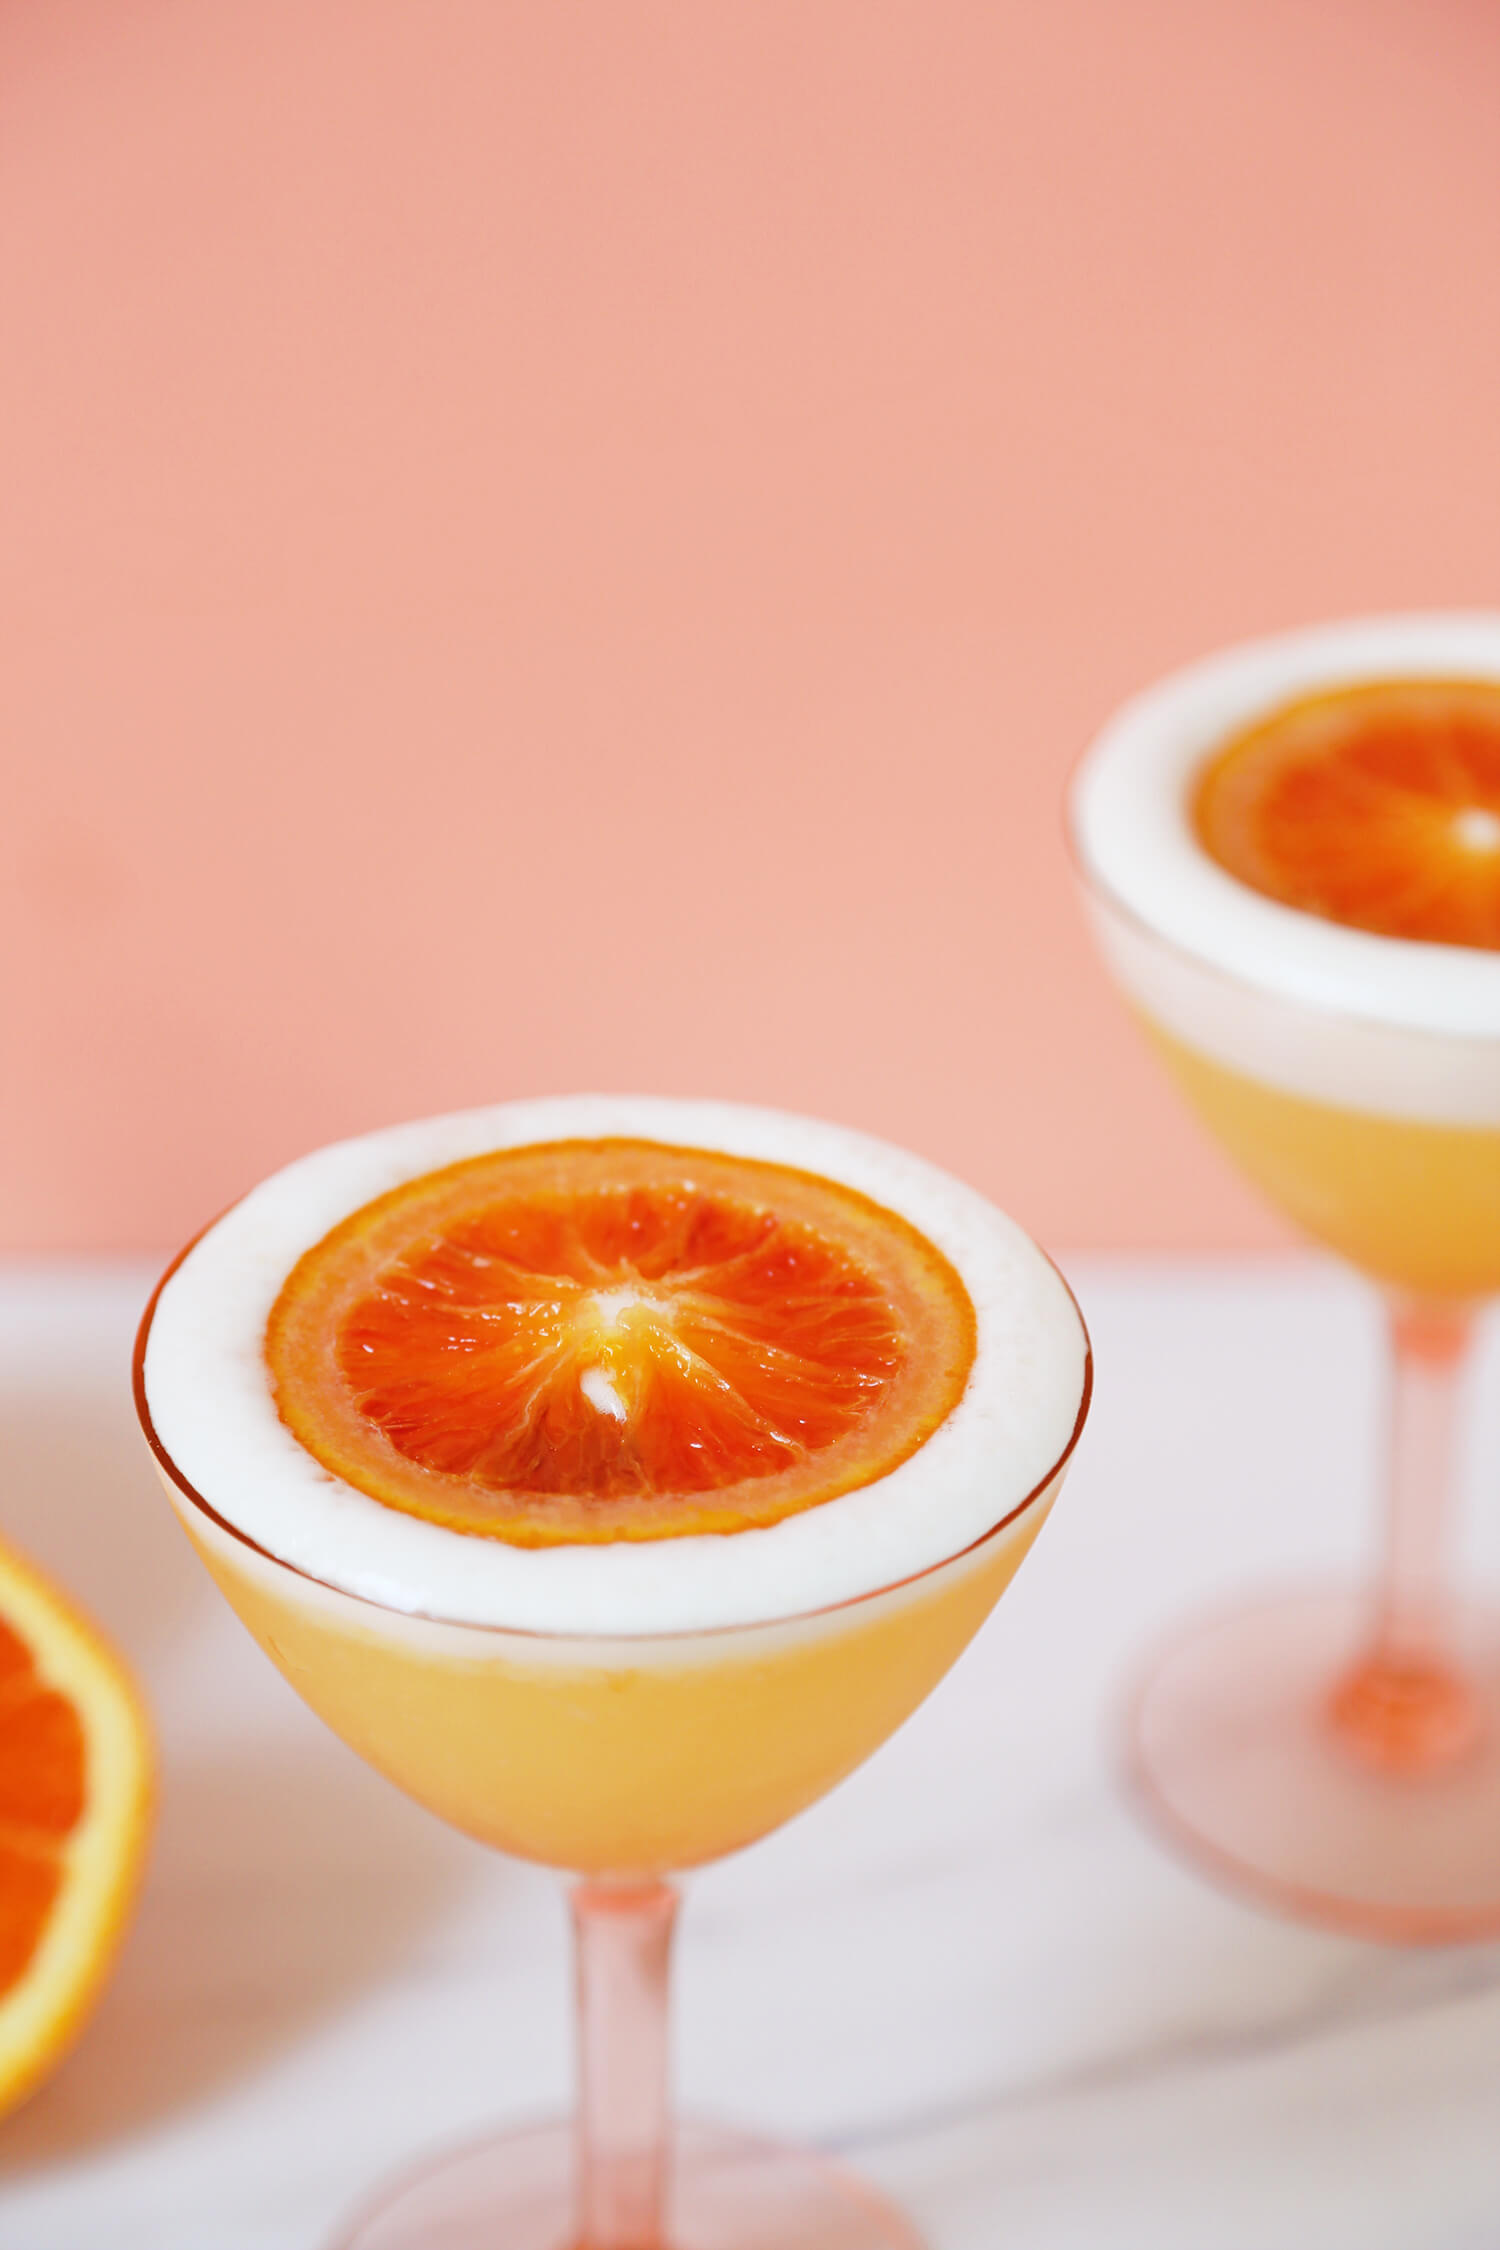 Drink a Cara Cara Mezcal Sour this Cinco de Mayo